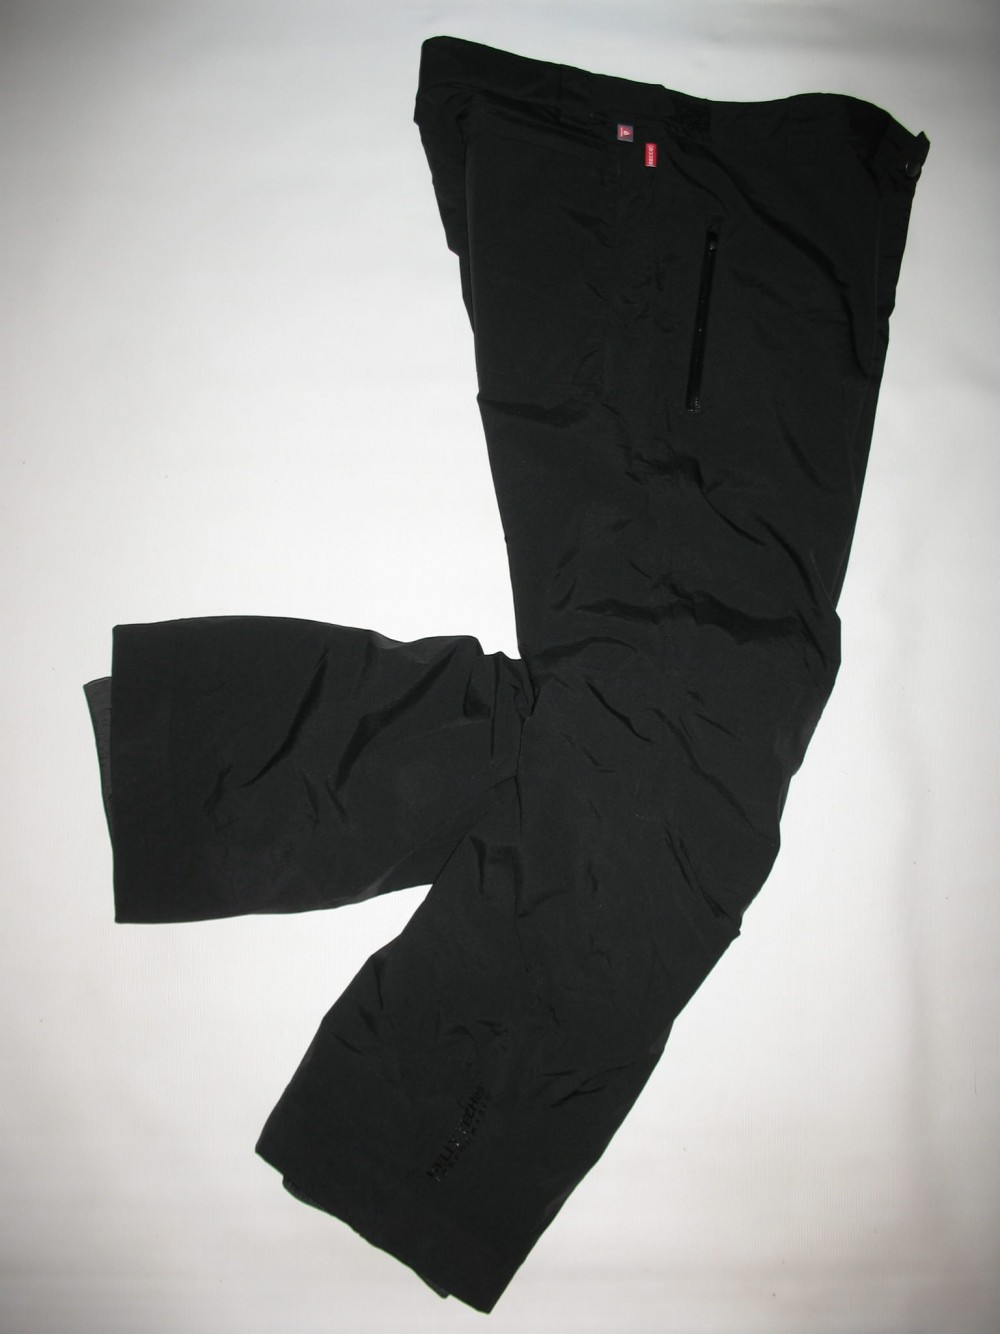 Штаны HELLY HANSEN Legendary Pant (размер L) - 7